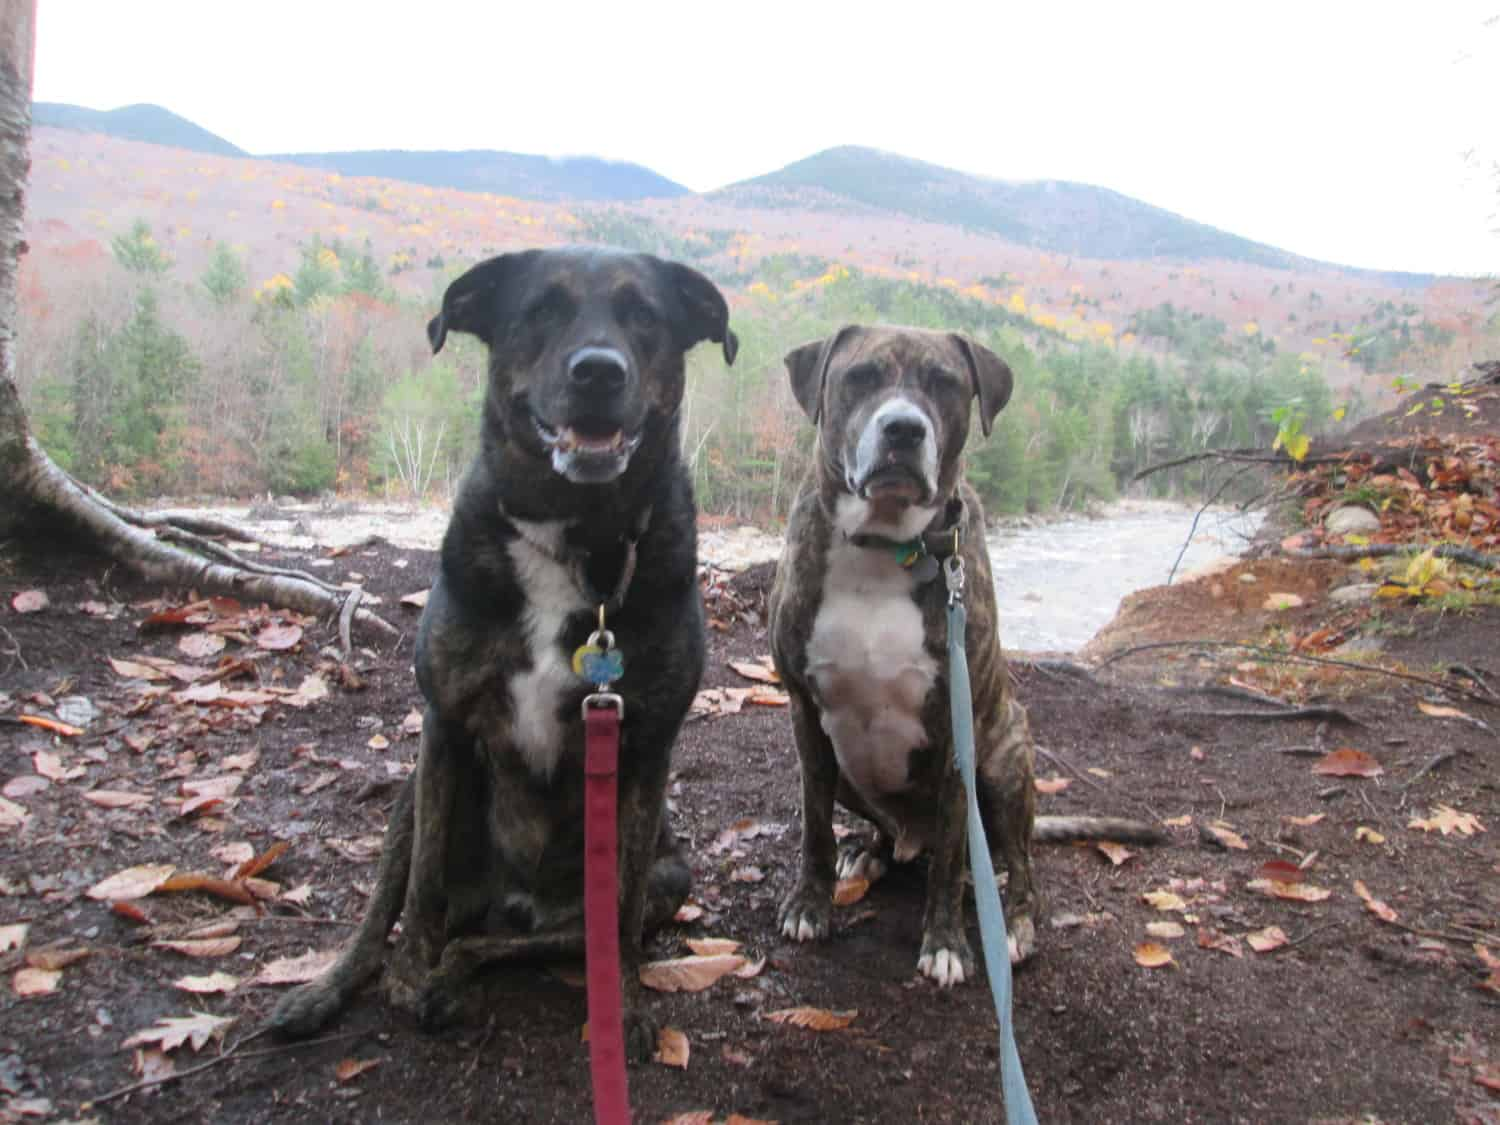 Dogs on a pet friendly trail in the White Mountains, NH